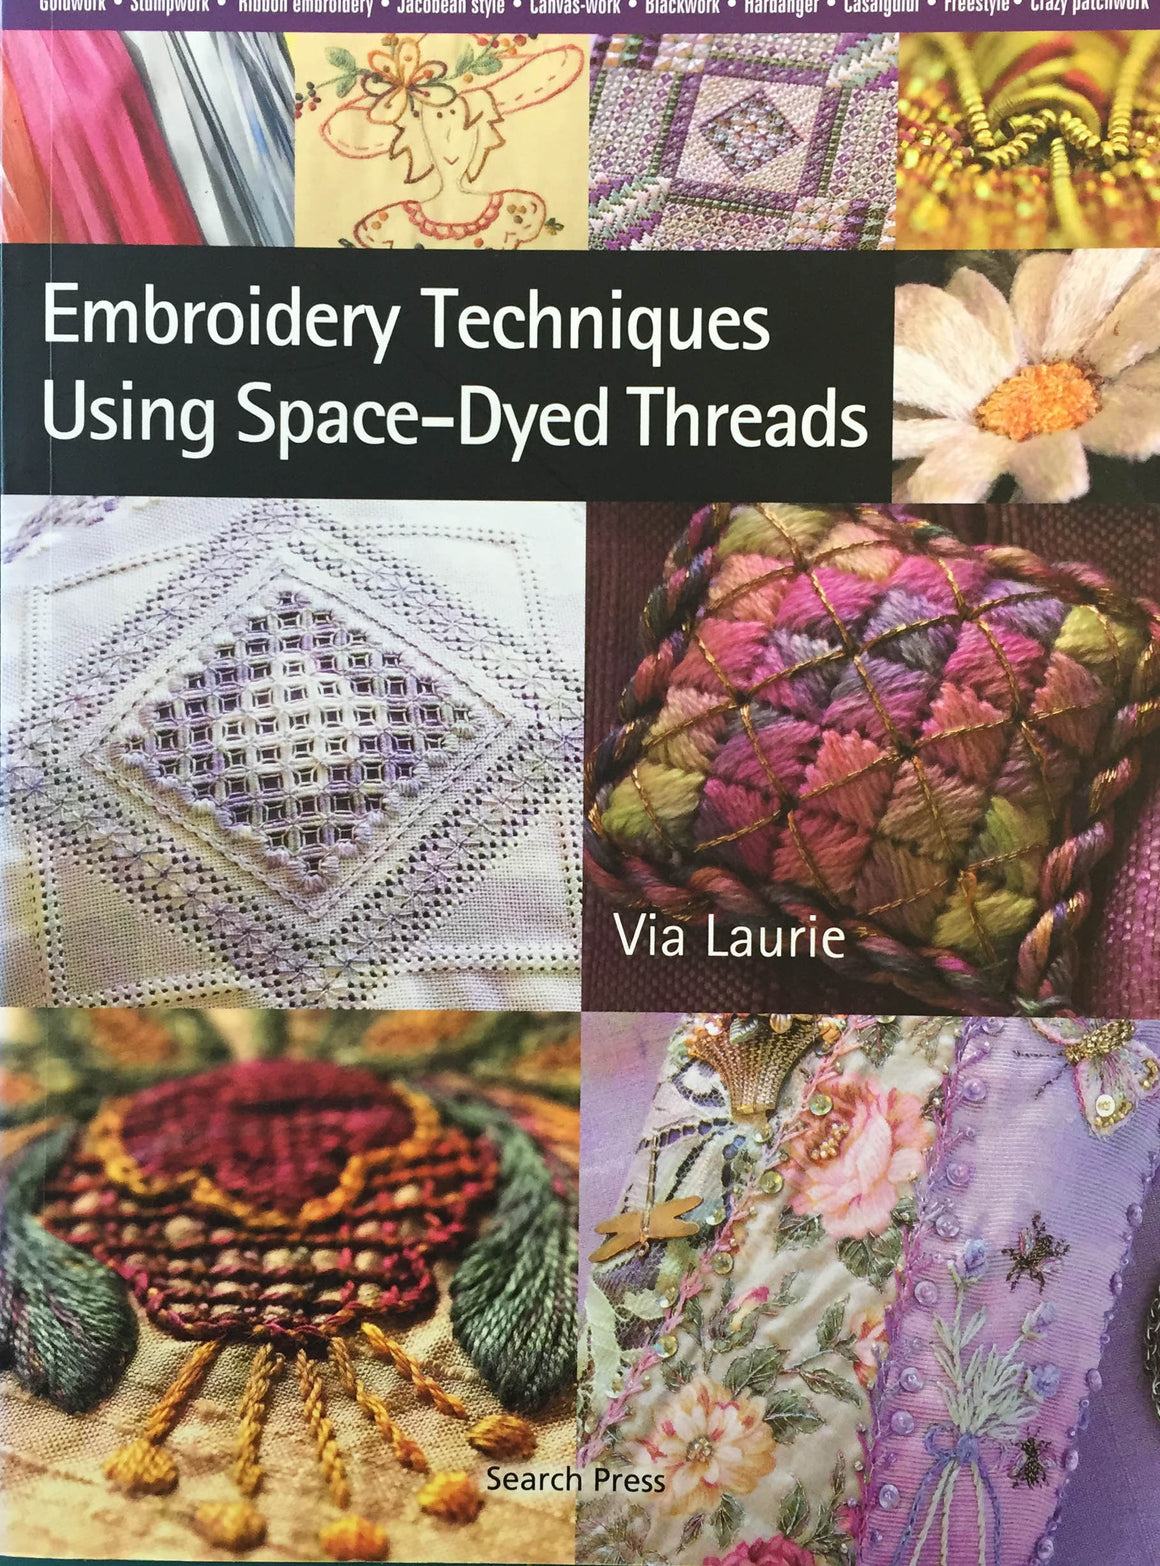 Embroidery Techniques Using Space-Dyed Threads